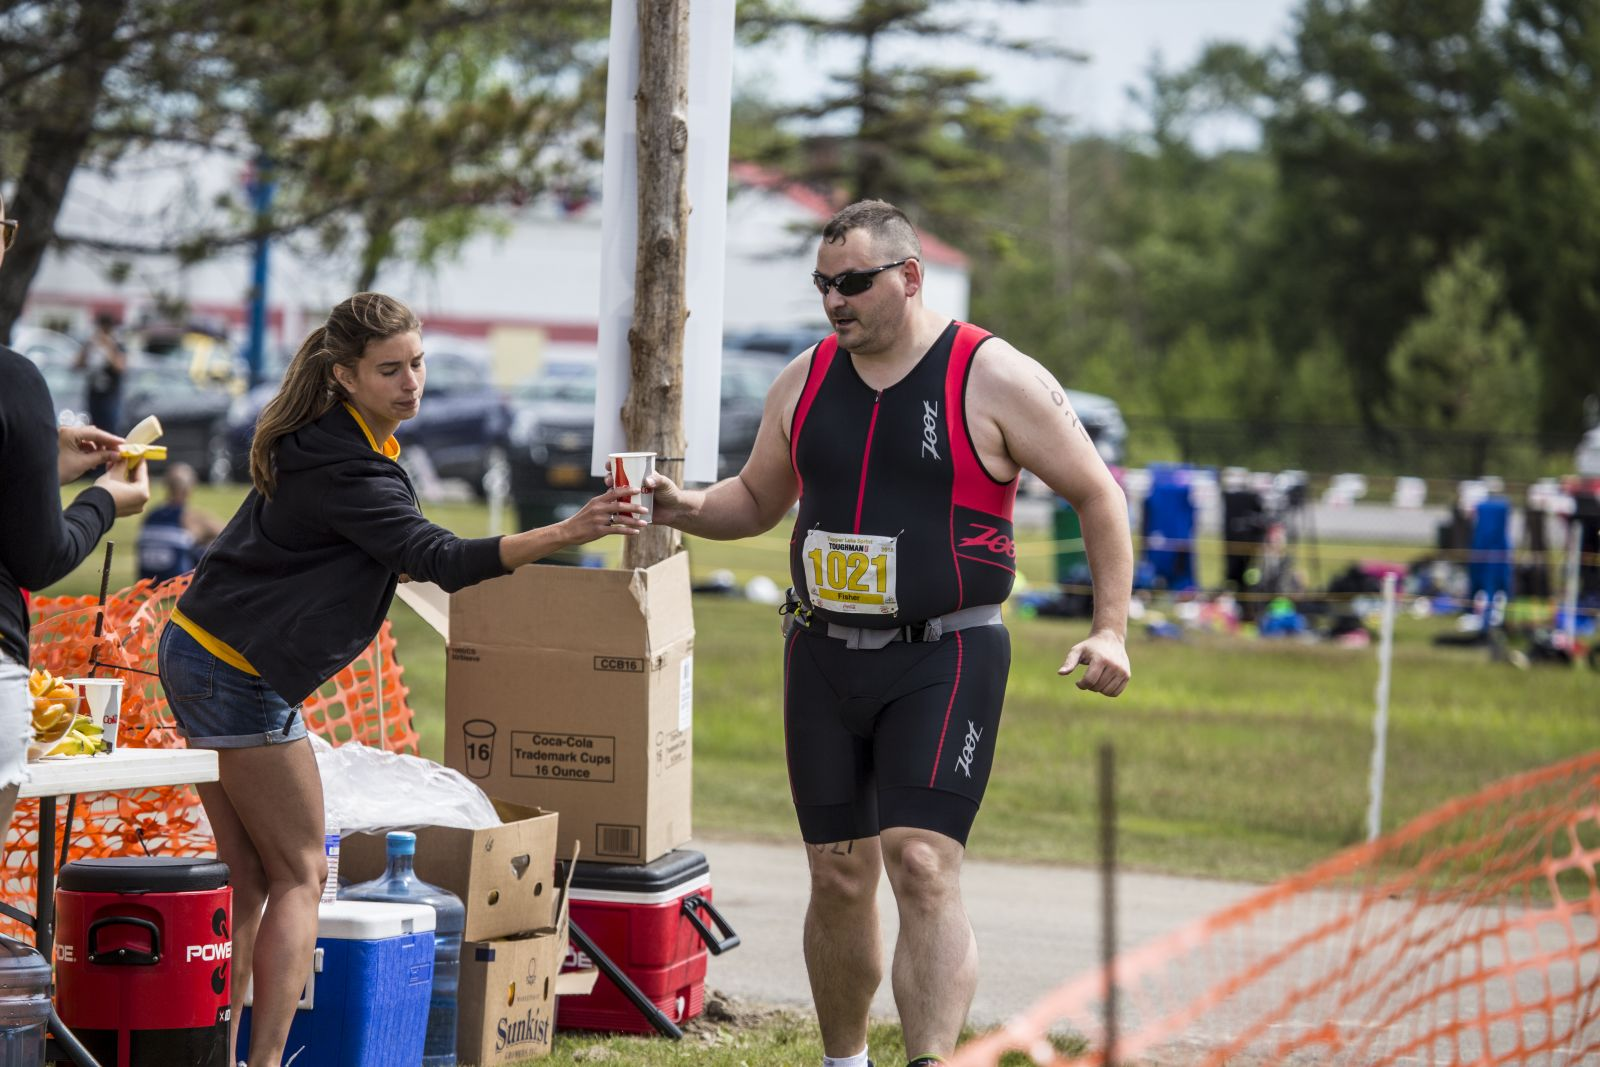 Volunteers provide support to Tinman athletes before, during, and after the race.